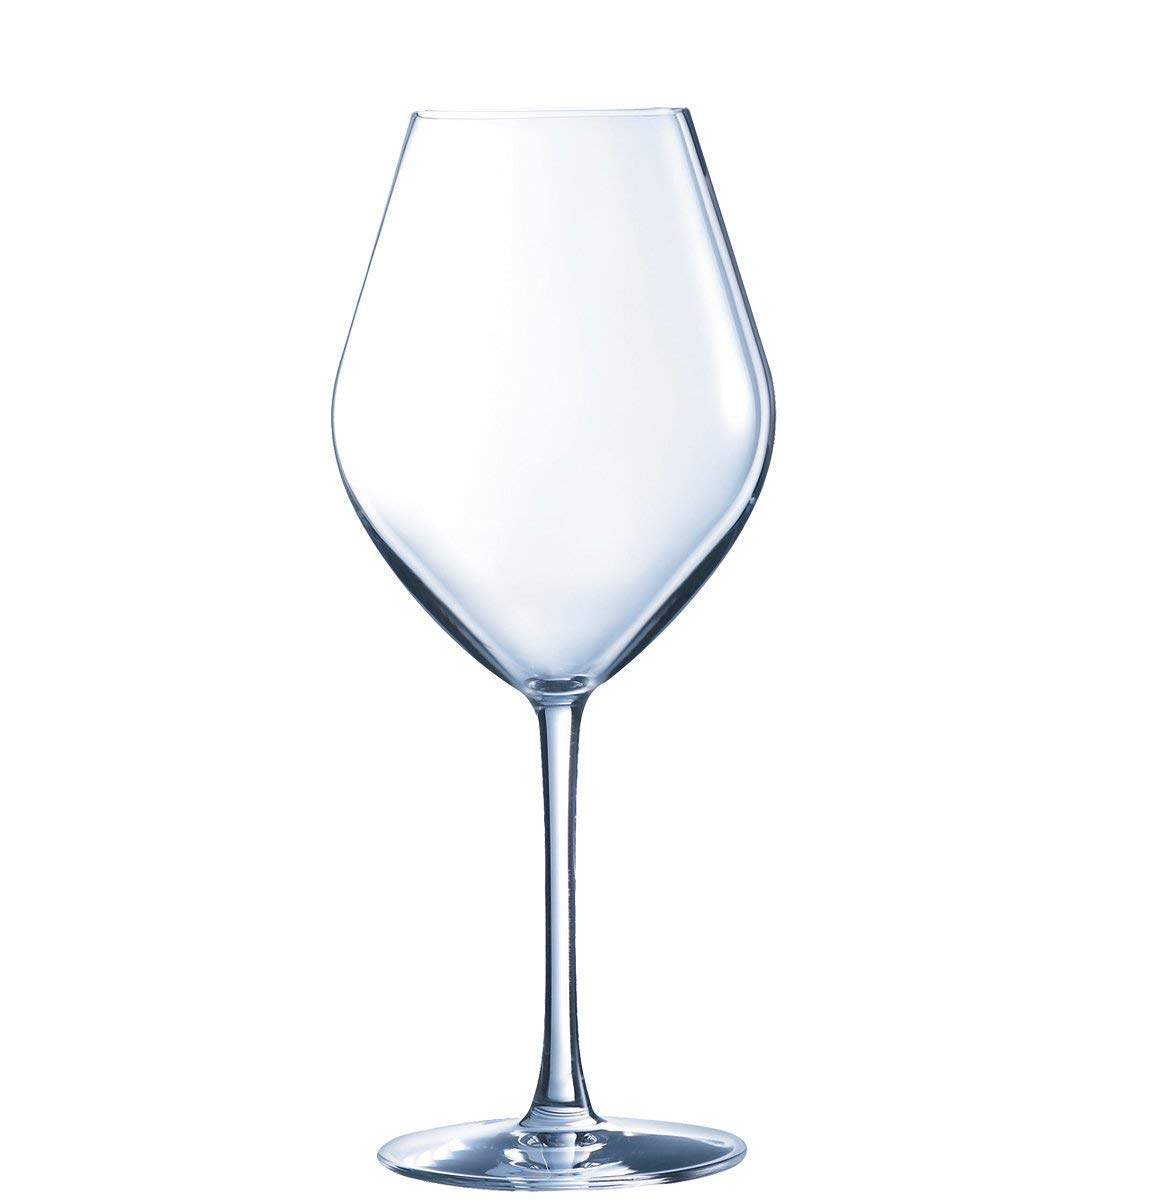 7356415383f Buy Chef   Sommelier Chef Sommelier AromÂŽUp Fruity Wine Glass 350Ml  Without Filling Mark 6 Glasse Online at Low Prices in India - Amazon.in